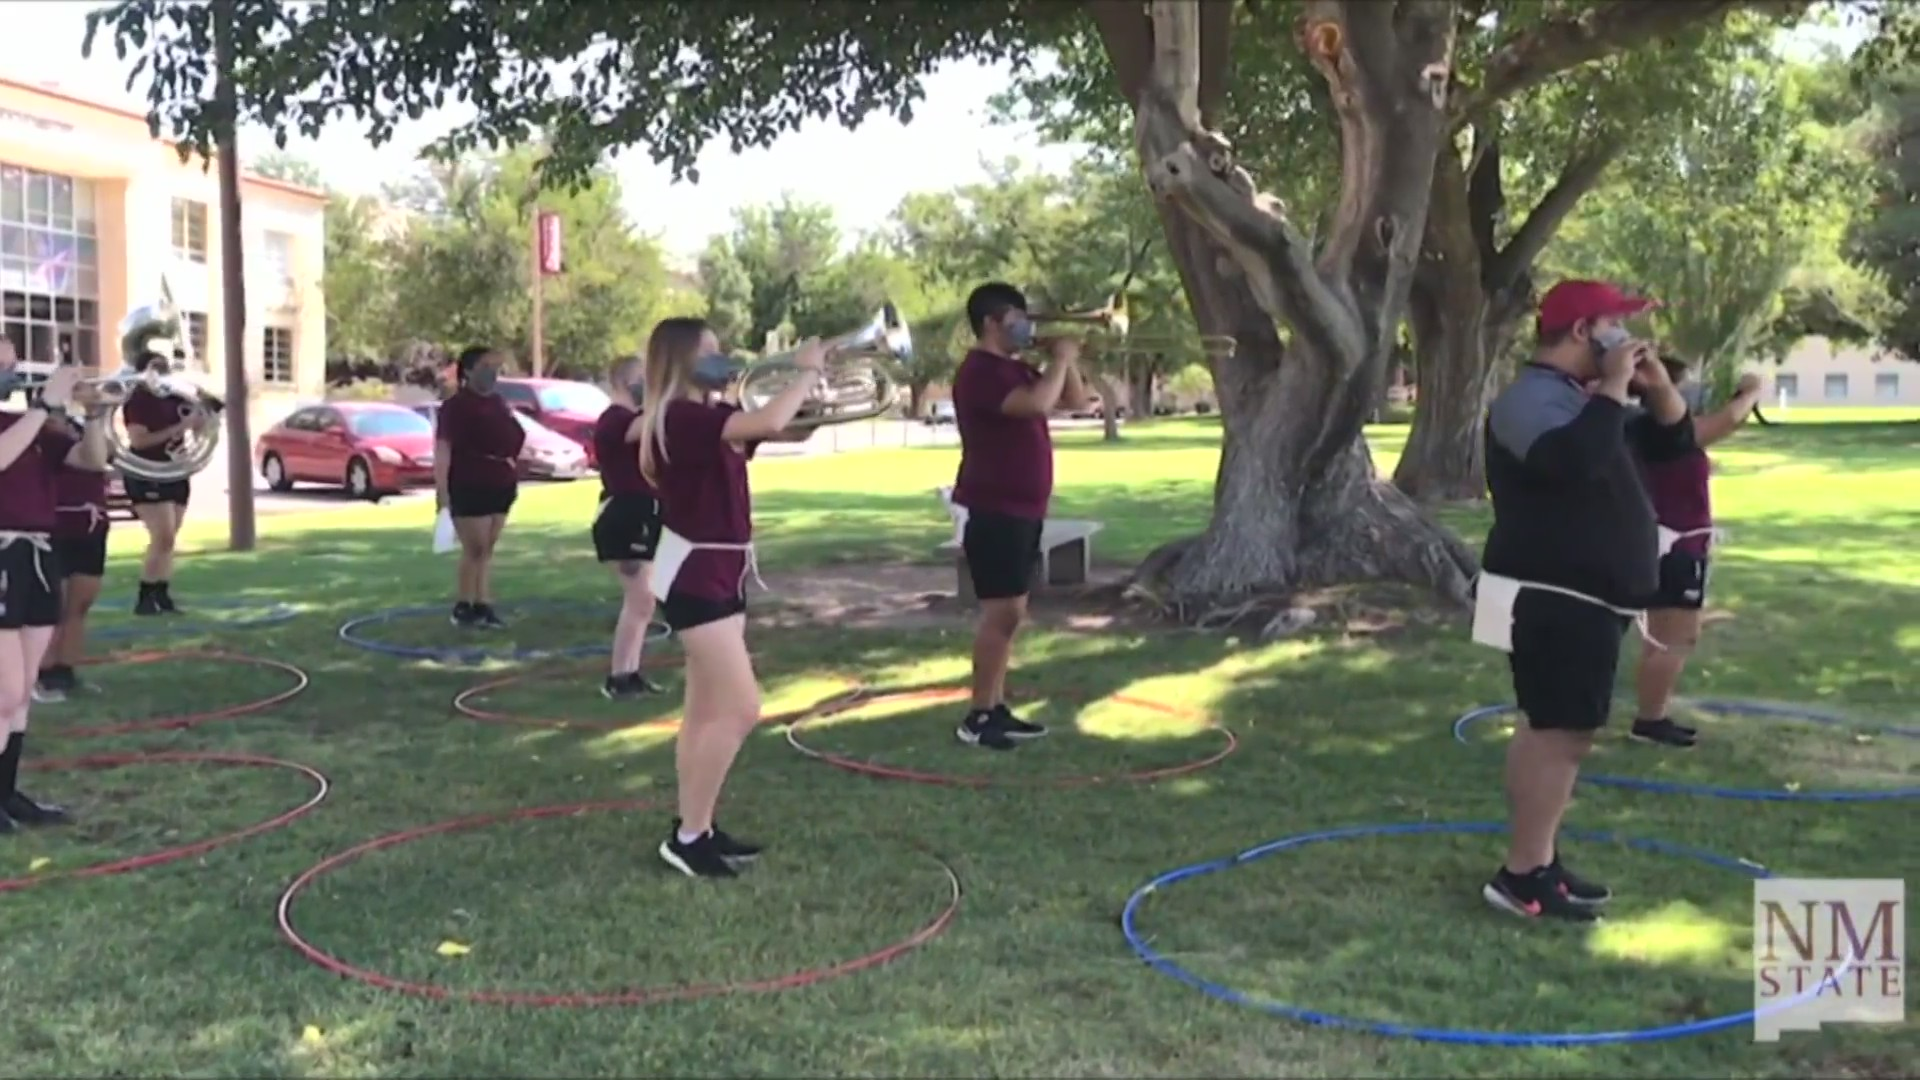 Nmsu Marching Band Creates Masks With Opening For Instruments